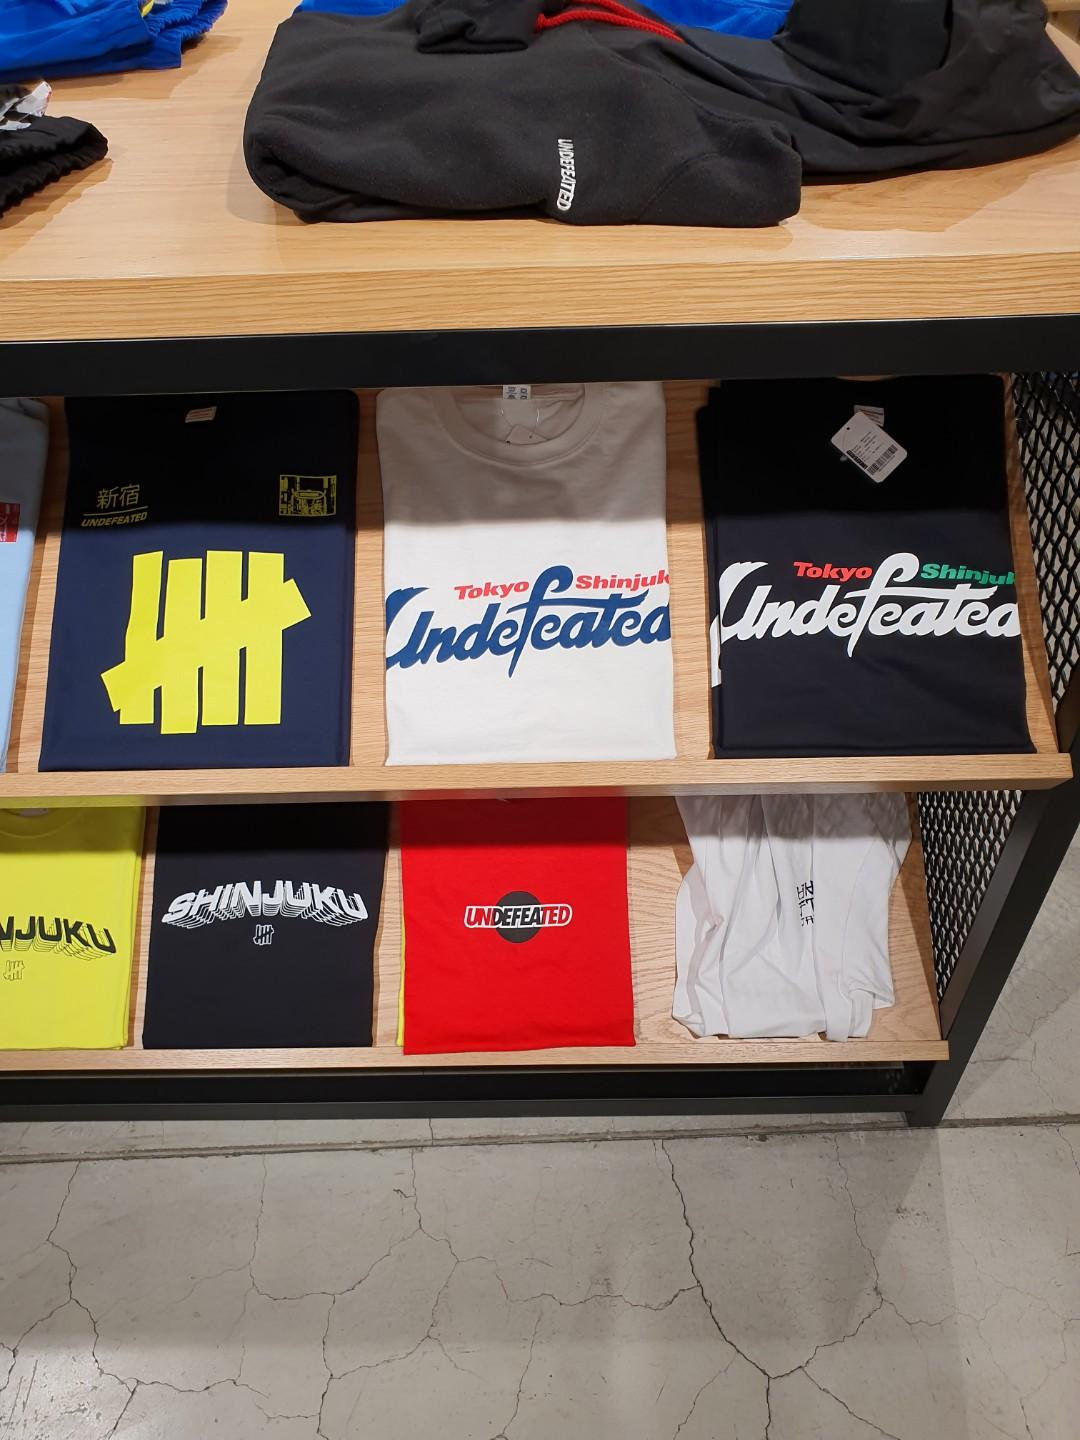 Undefeated tees